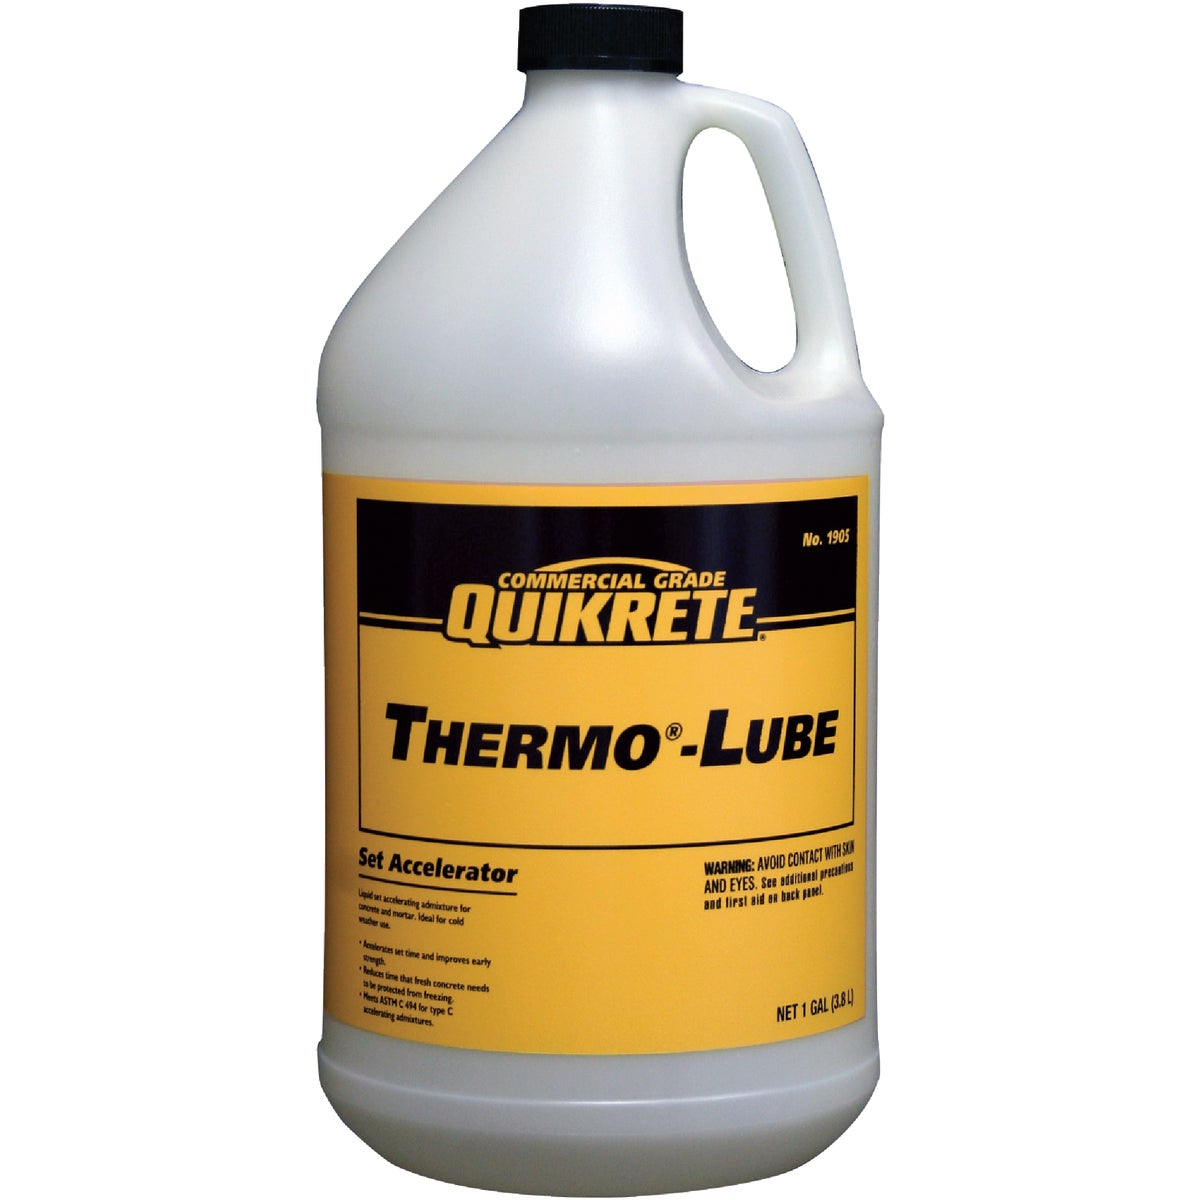 GAL THERM-LUBE ADMIXTURE - 1905-17 by Quikrete Co